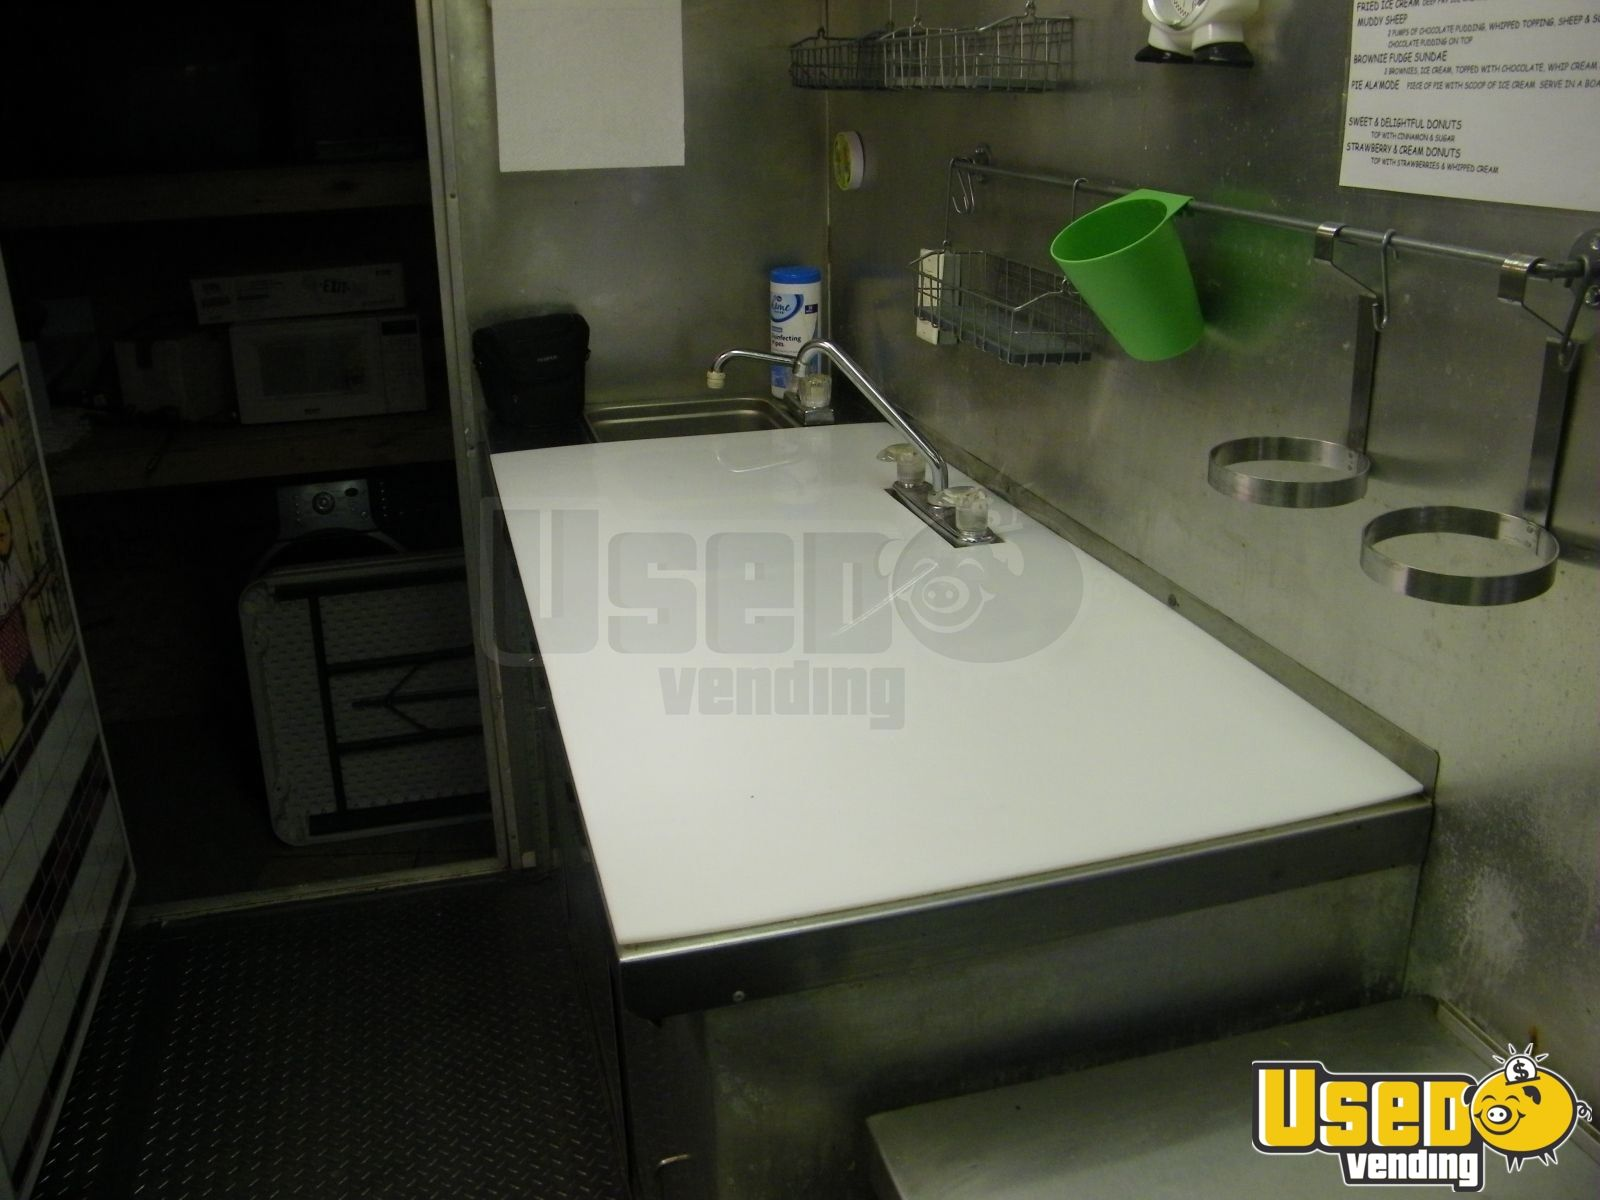 2004 Mirage Kitchen Food Trailer Awning Indiana for Sale - 6